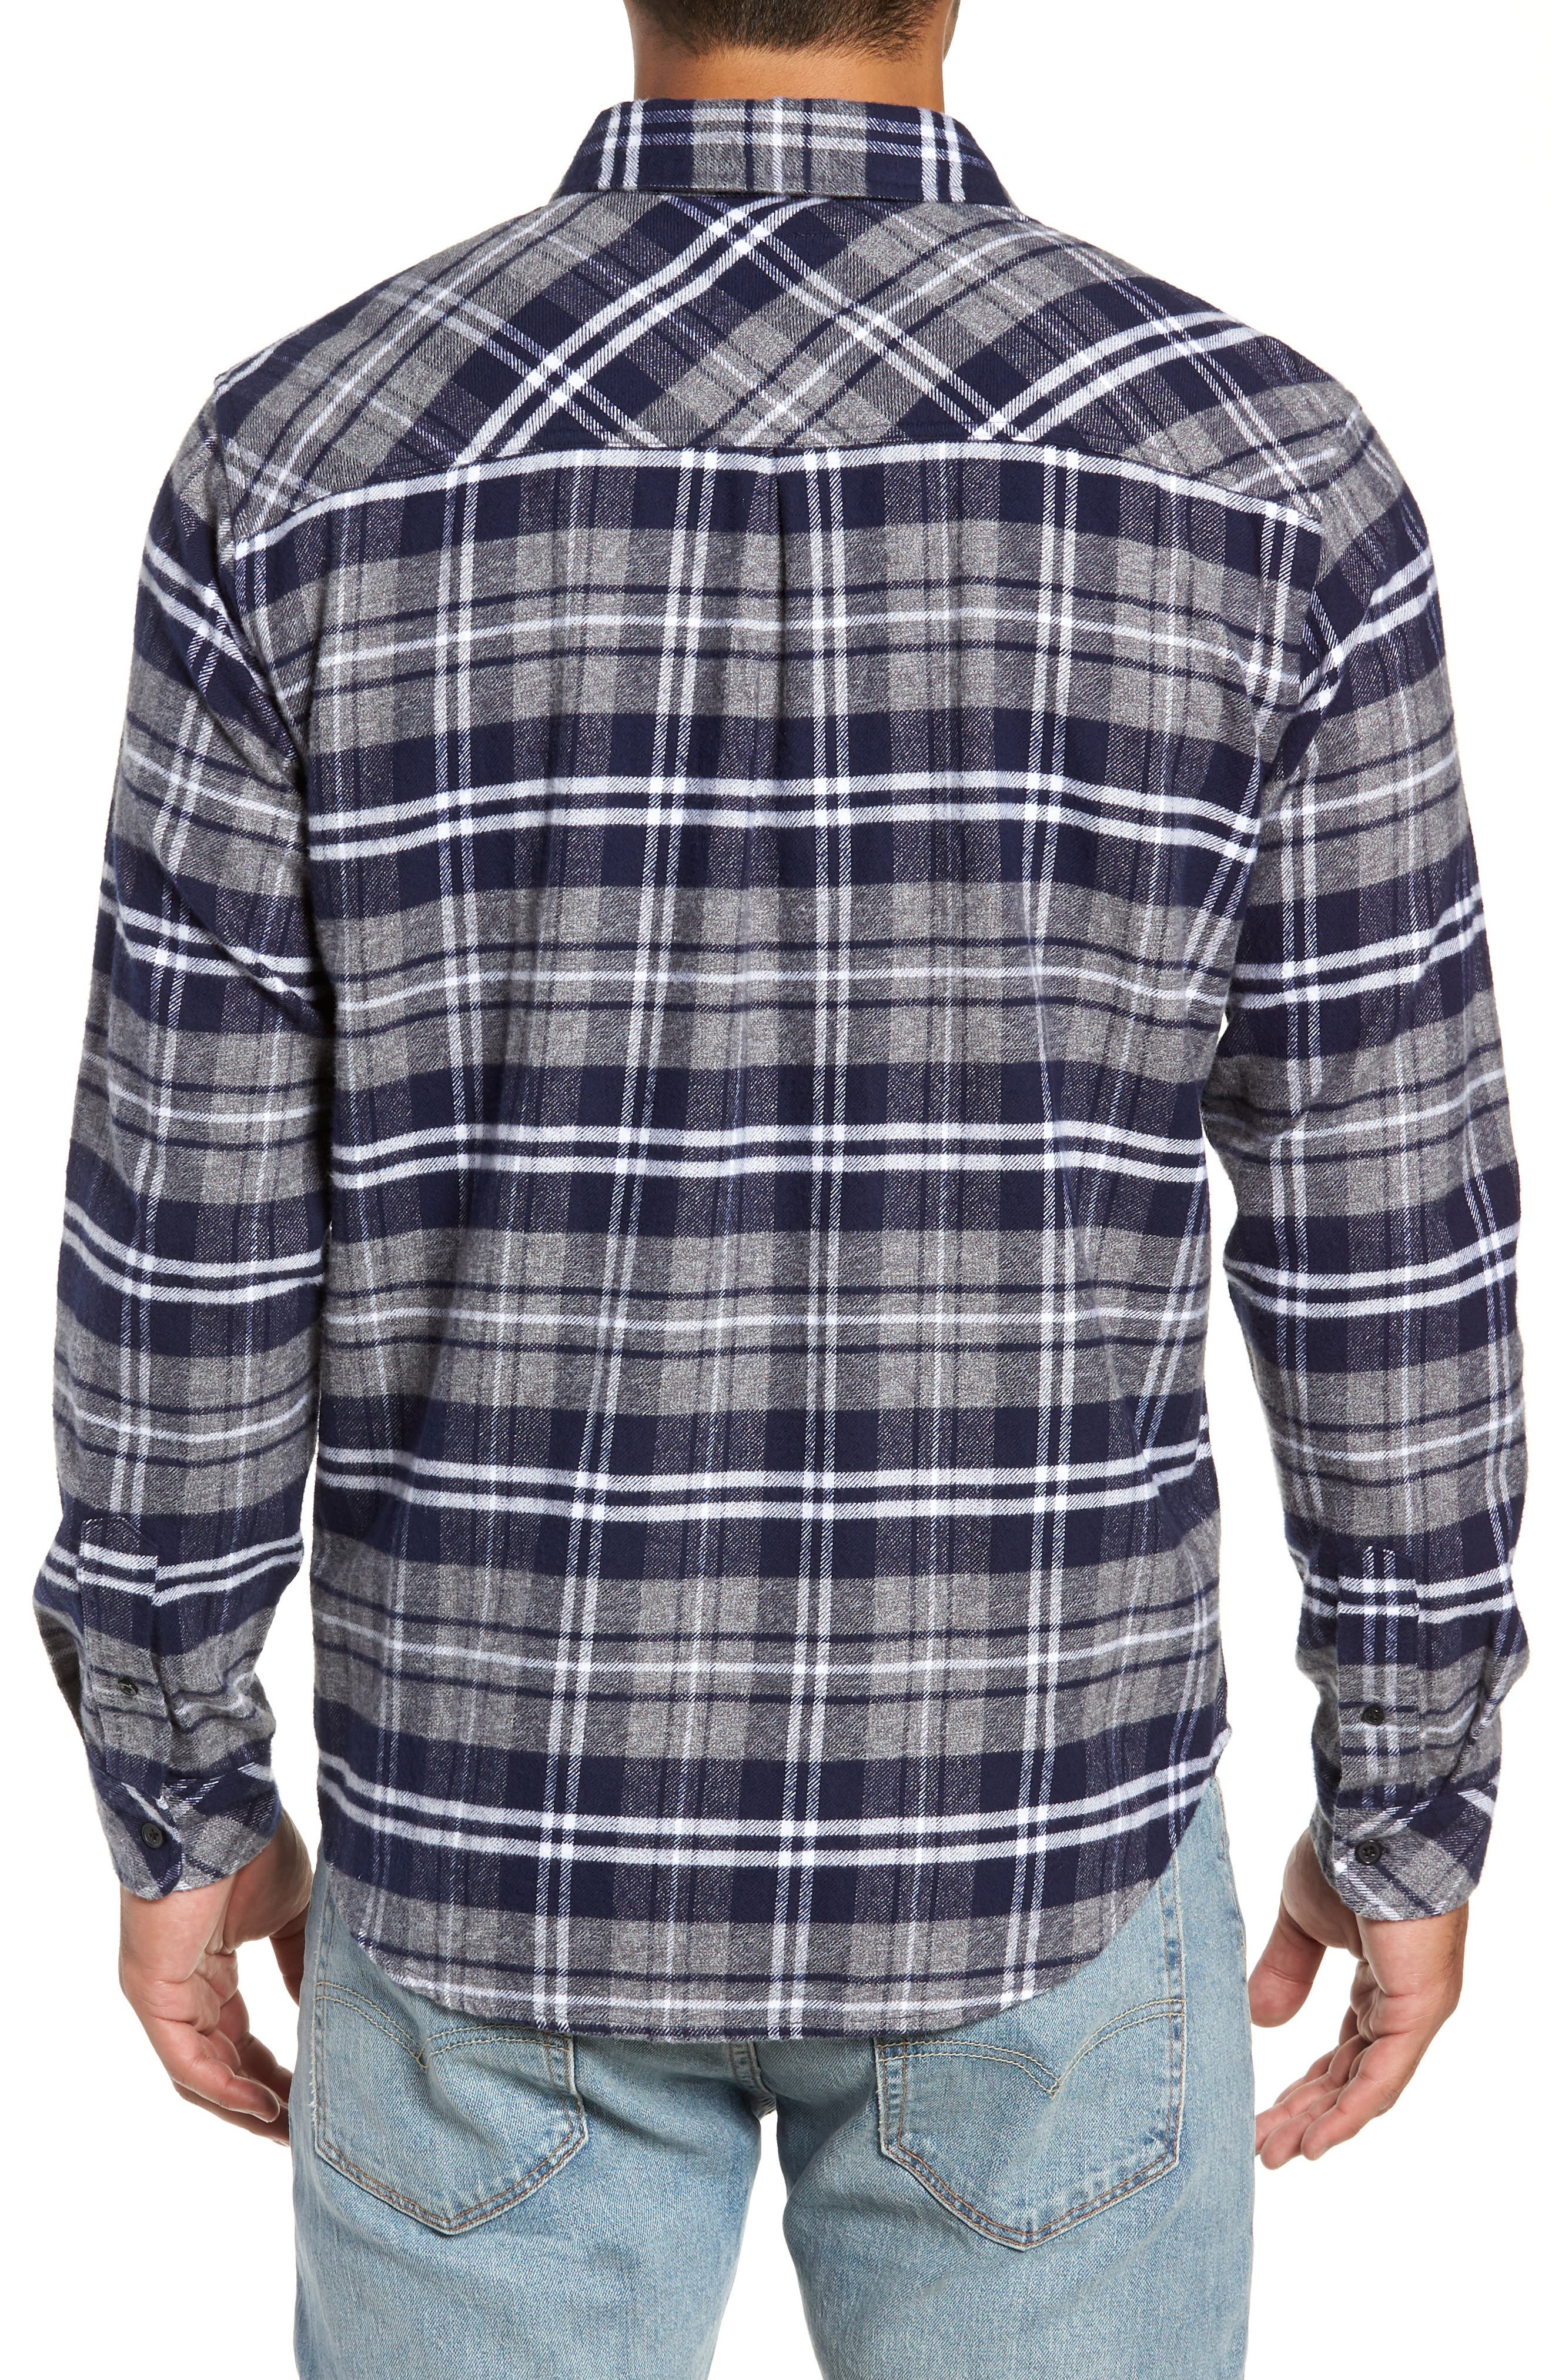 Forrest Slim Fit Plaid Flannel Sport Shirt,                             Alternate thumbnail 3, color,                             NAVY/LIGHT GREY/WHITE